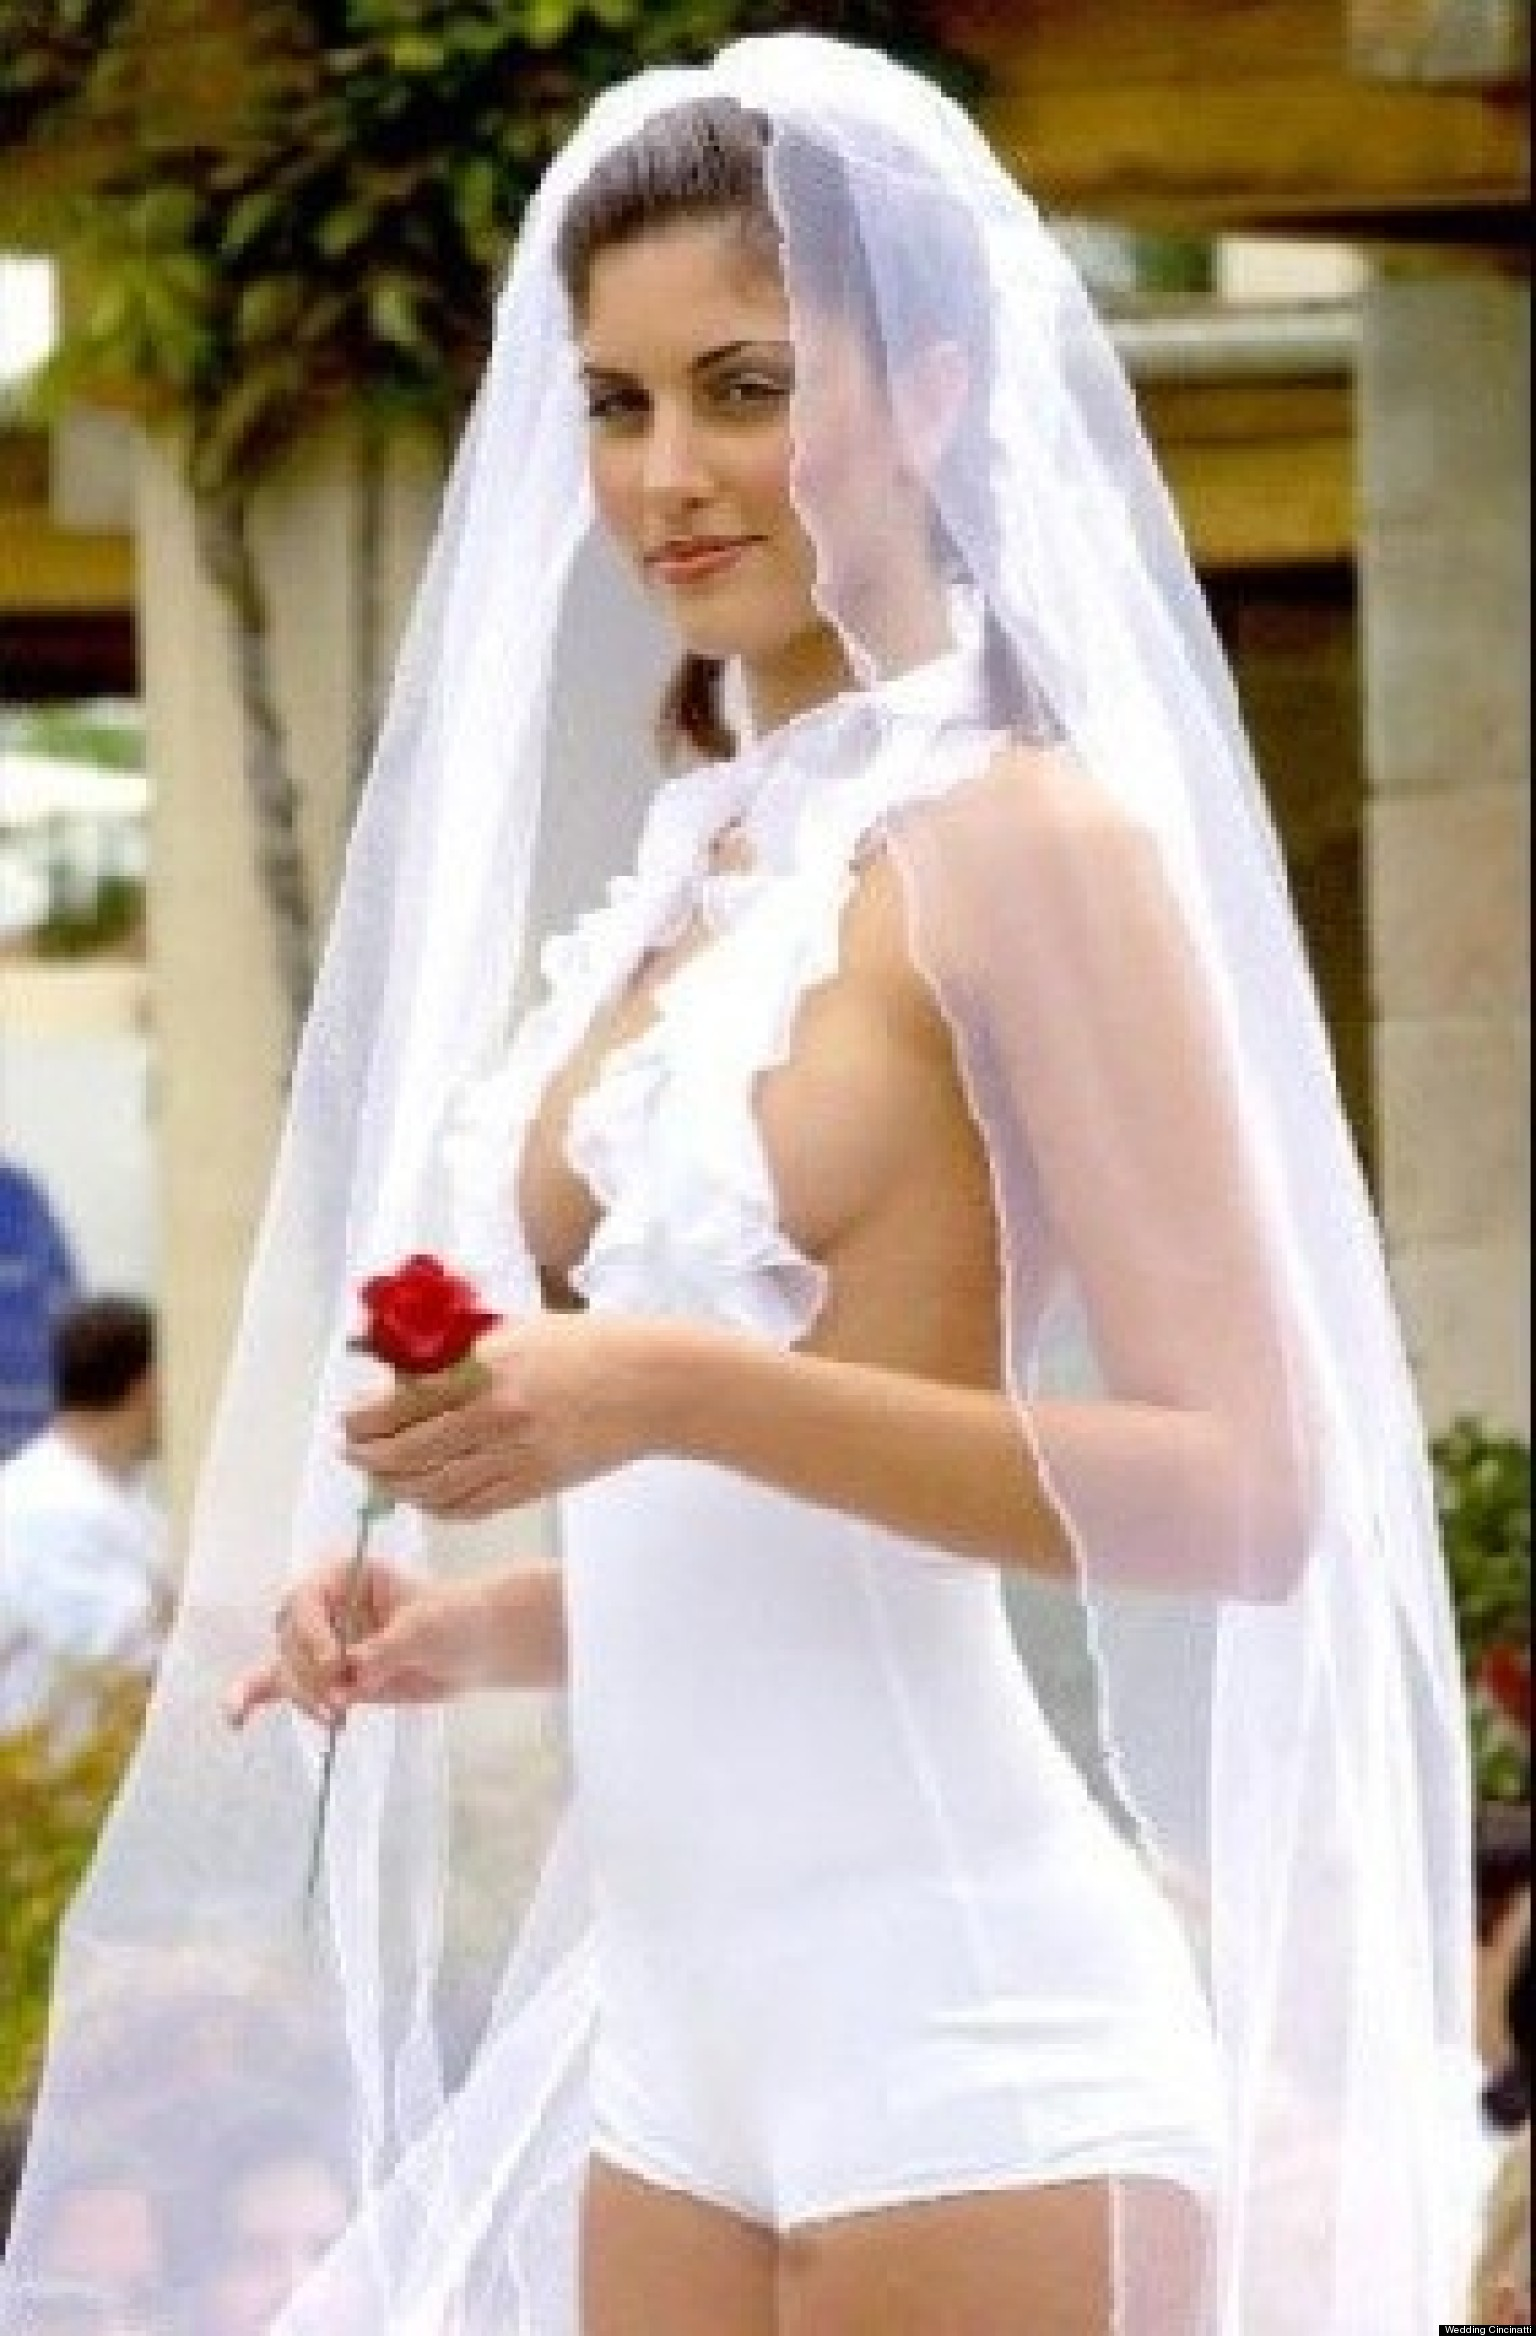 The Most Hilarious And Inappropriate Wedding Dresses Ever ...